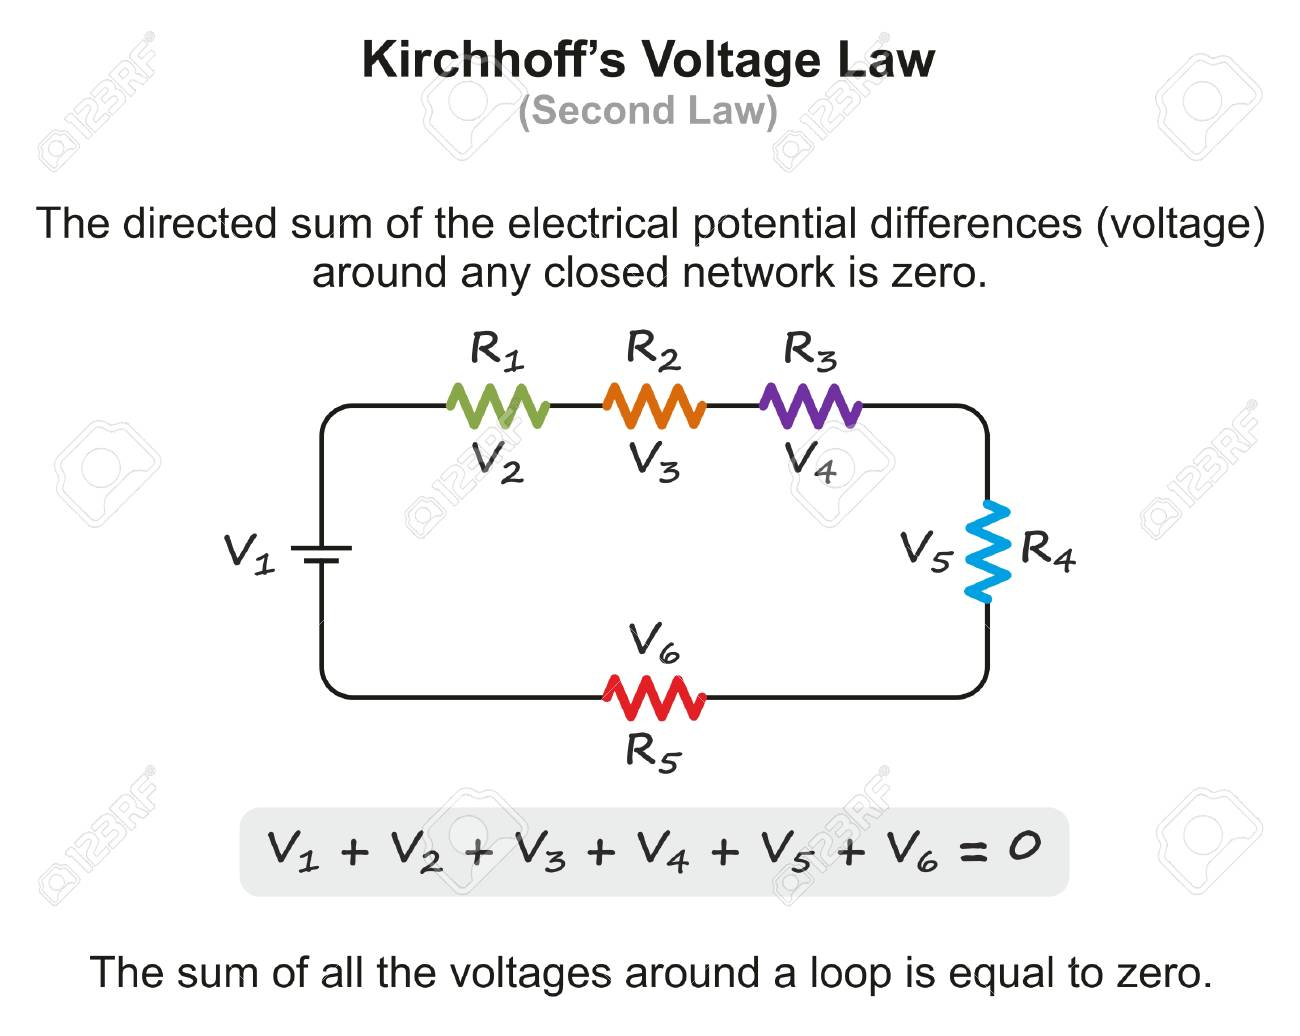 kirchhoff's voltage law infographic diagram with example showing the sum of  all voltages around a loop